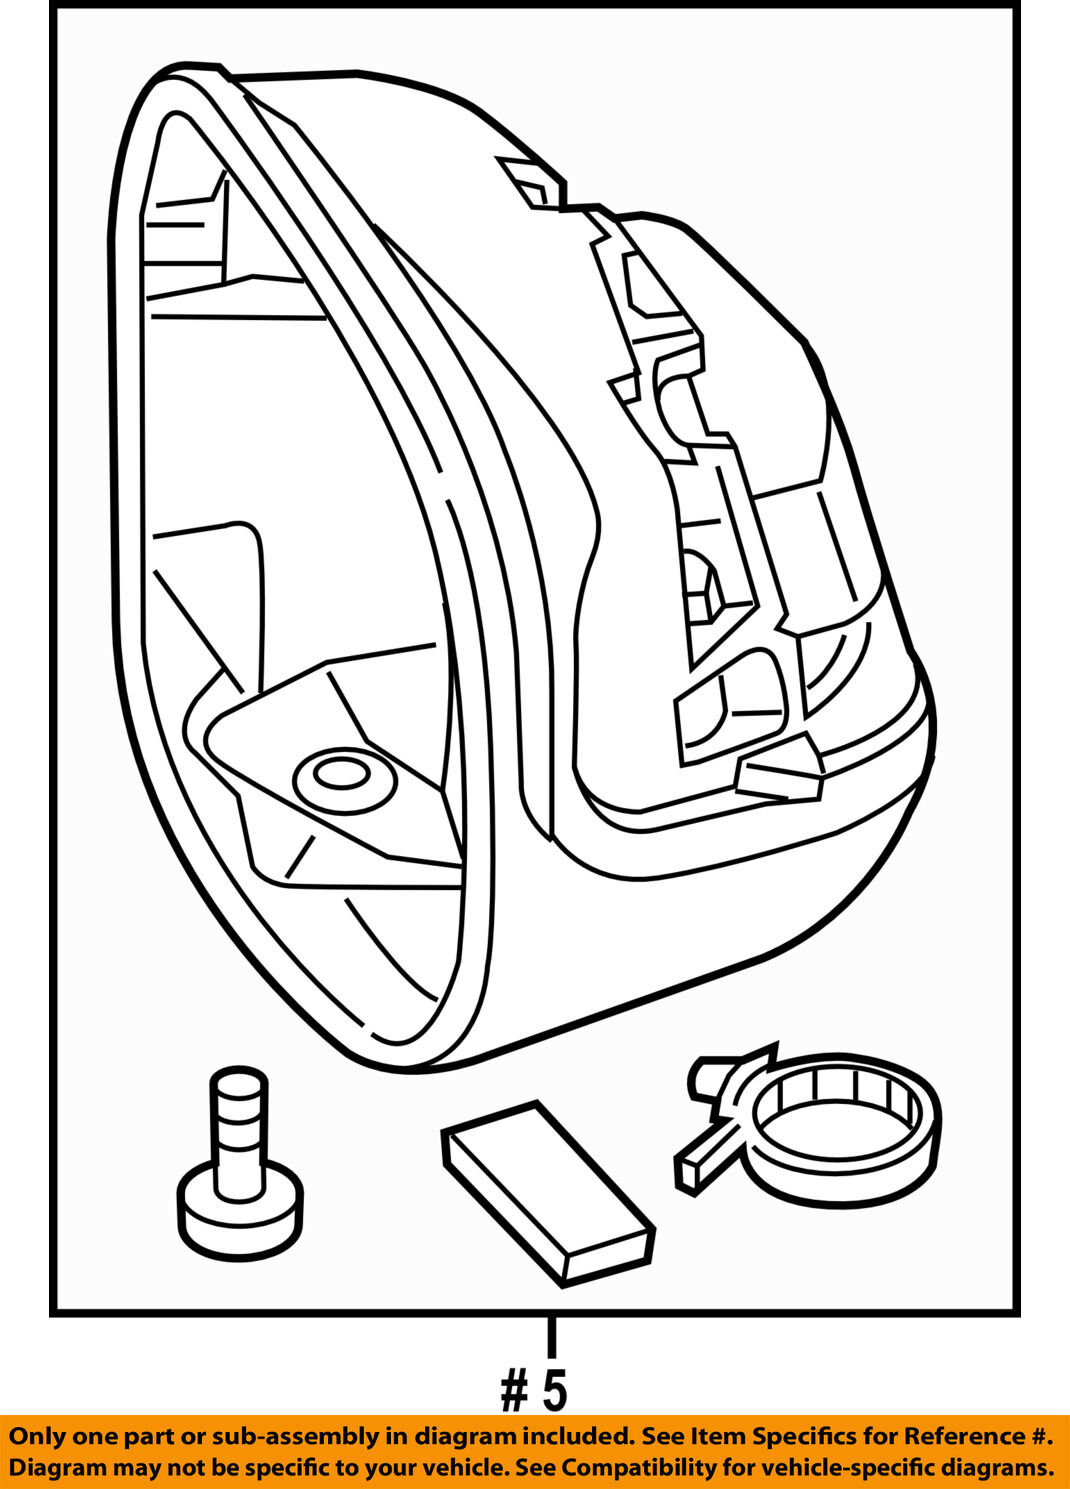 Honda Oem Door Side Rear View Mirror Housing Or Cap Cover Left Diagram 76255tr0a01 For Sale